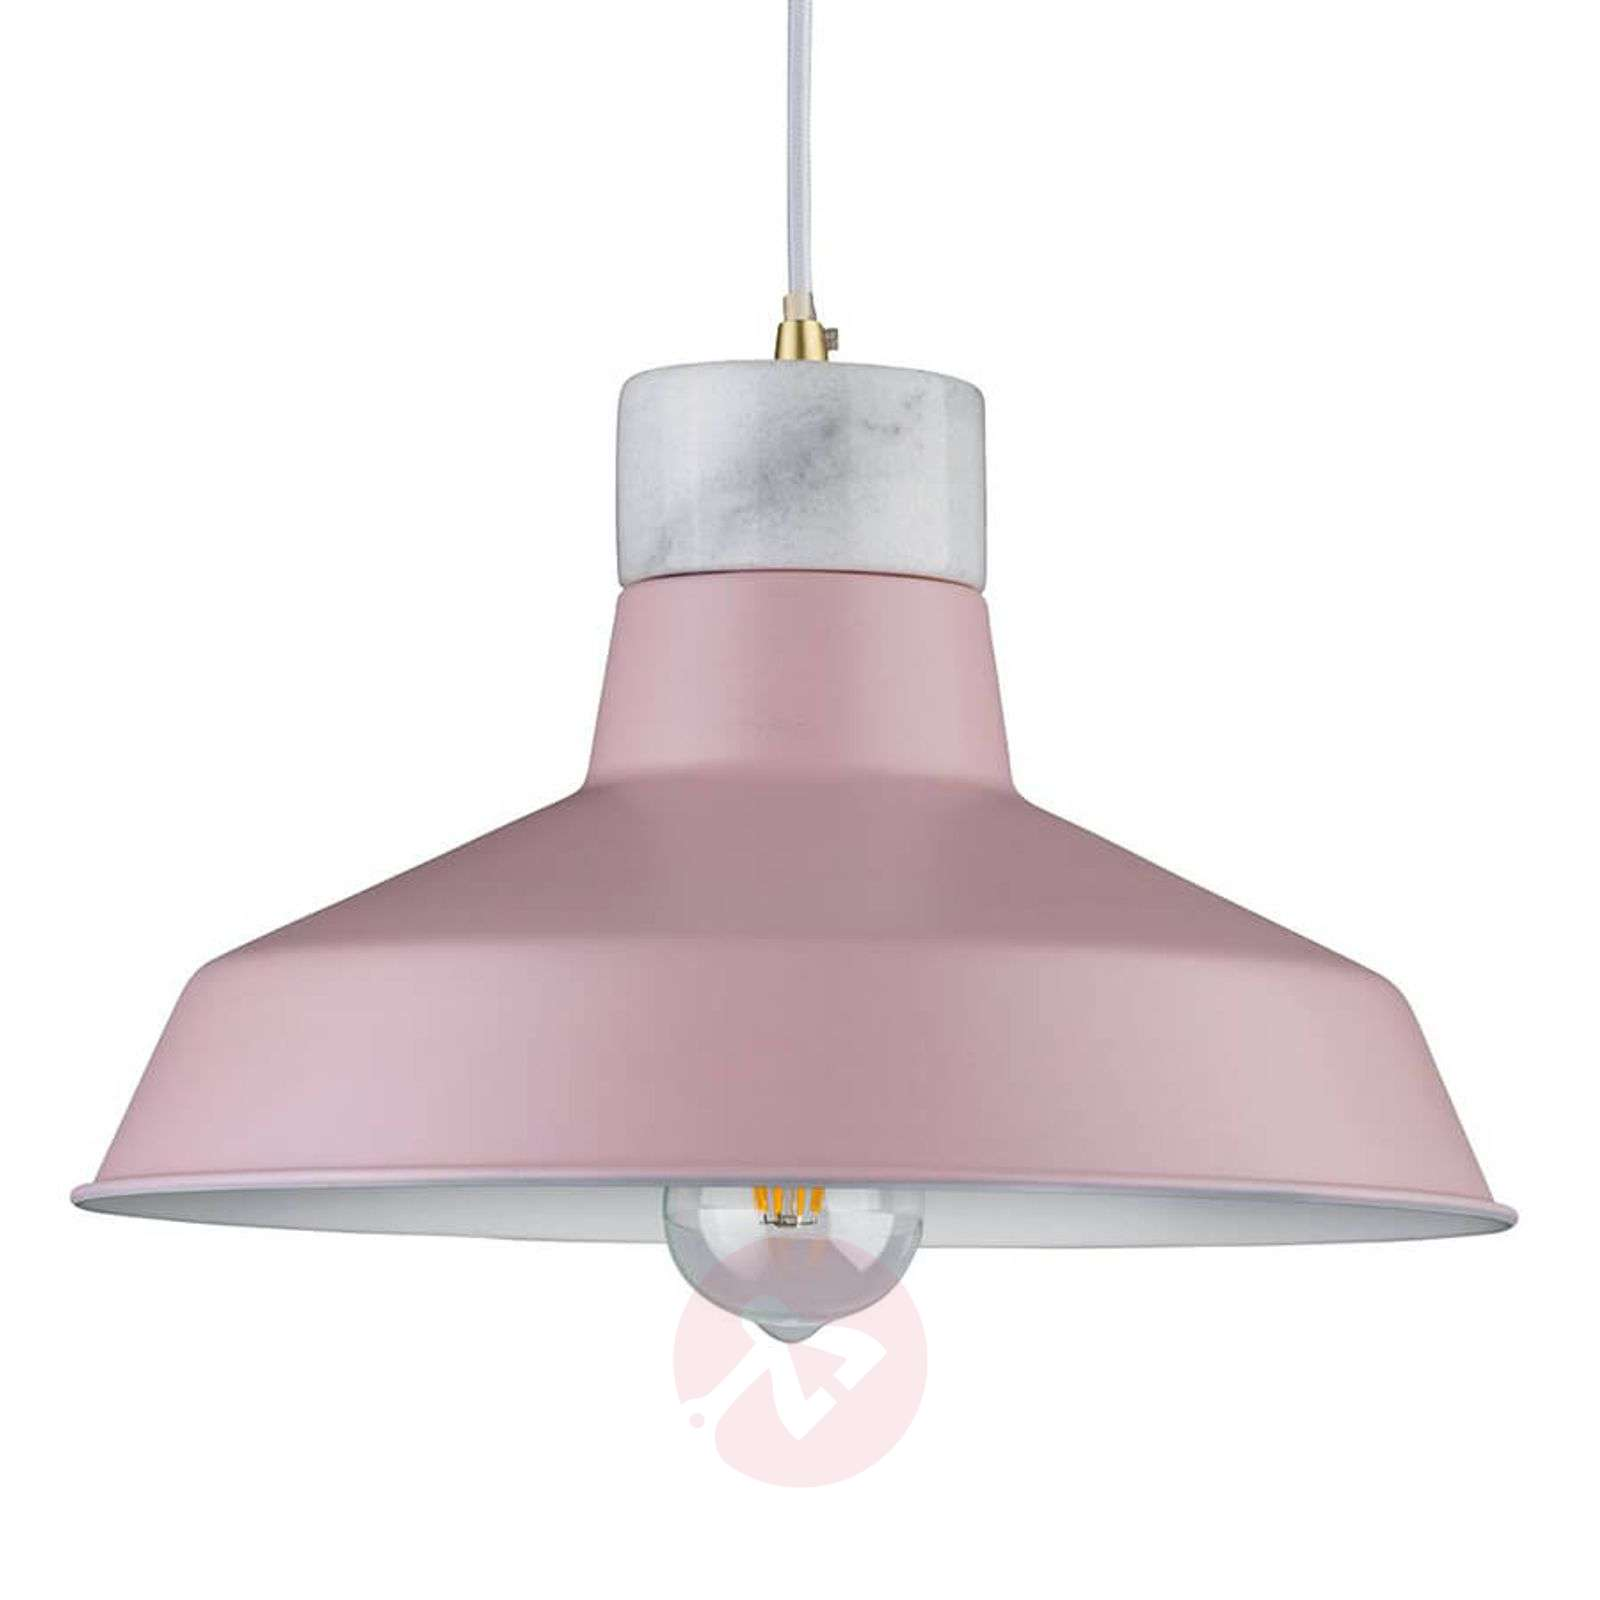 Pendant light Disa in soft rose